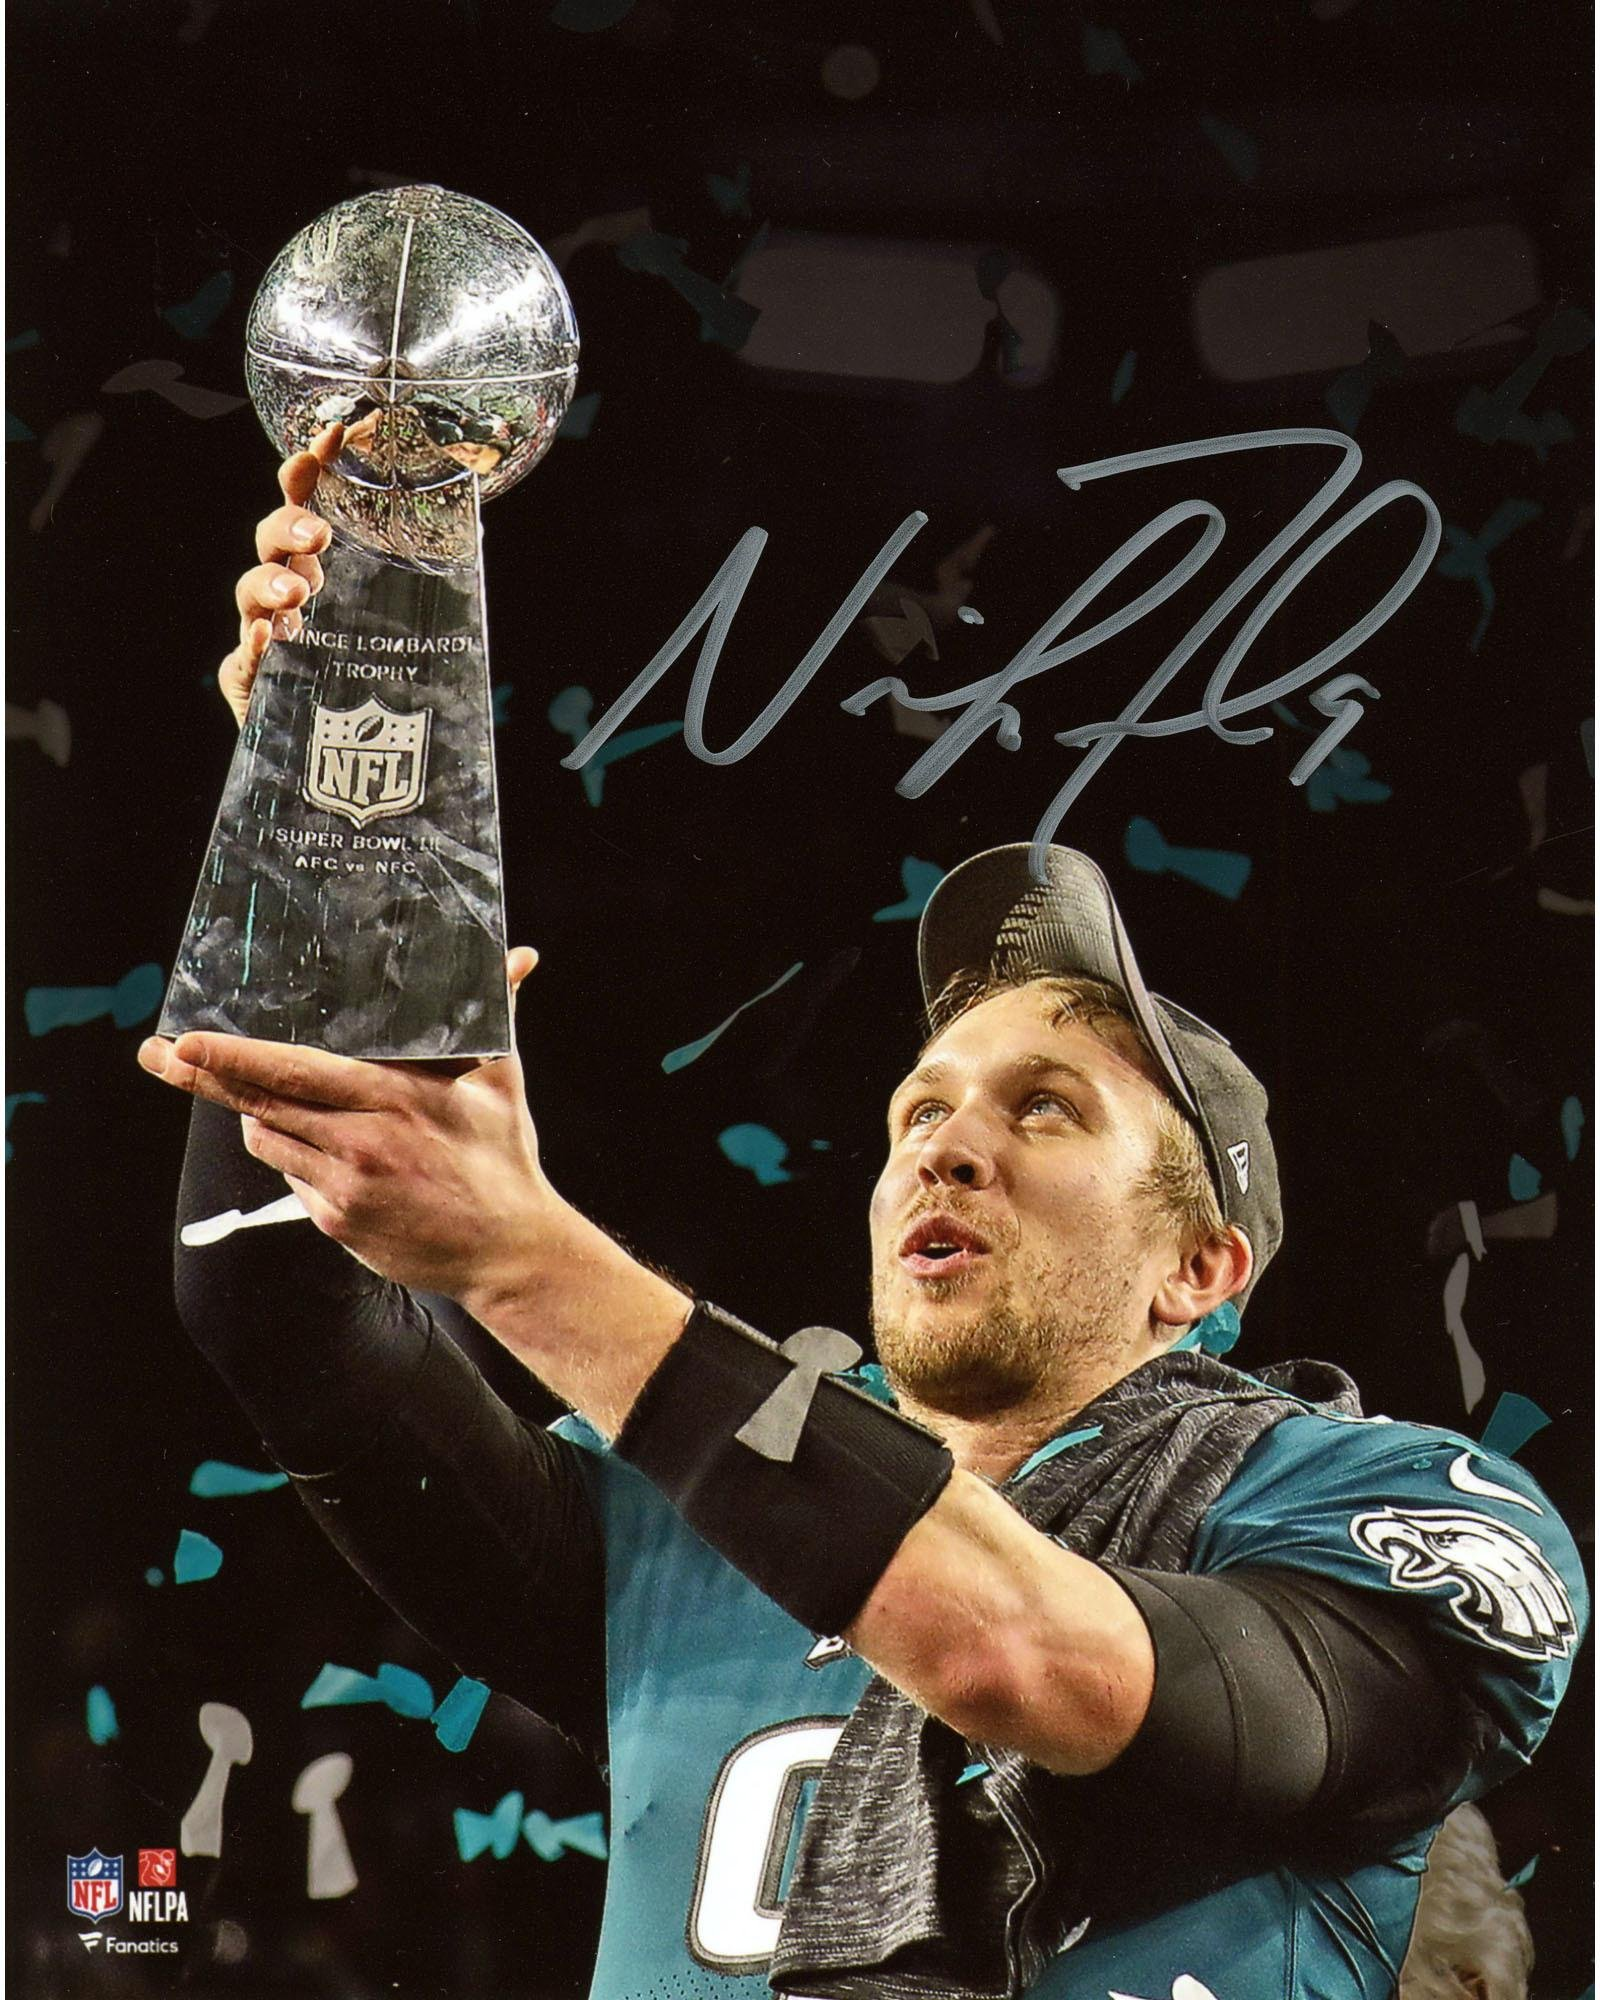 "Nick Foles Philadelphia Eagles Super Bowl LII Champions Autographed 8"" x 10"" Holding Trophy Photograph Fanatics Authentic Certified"